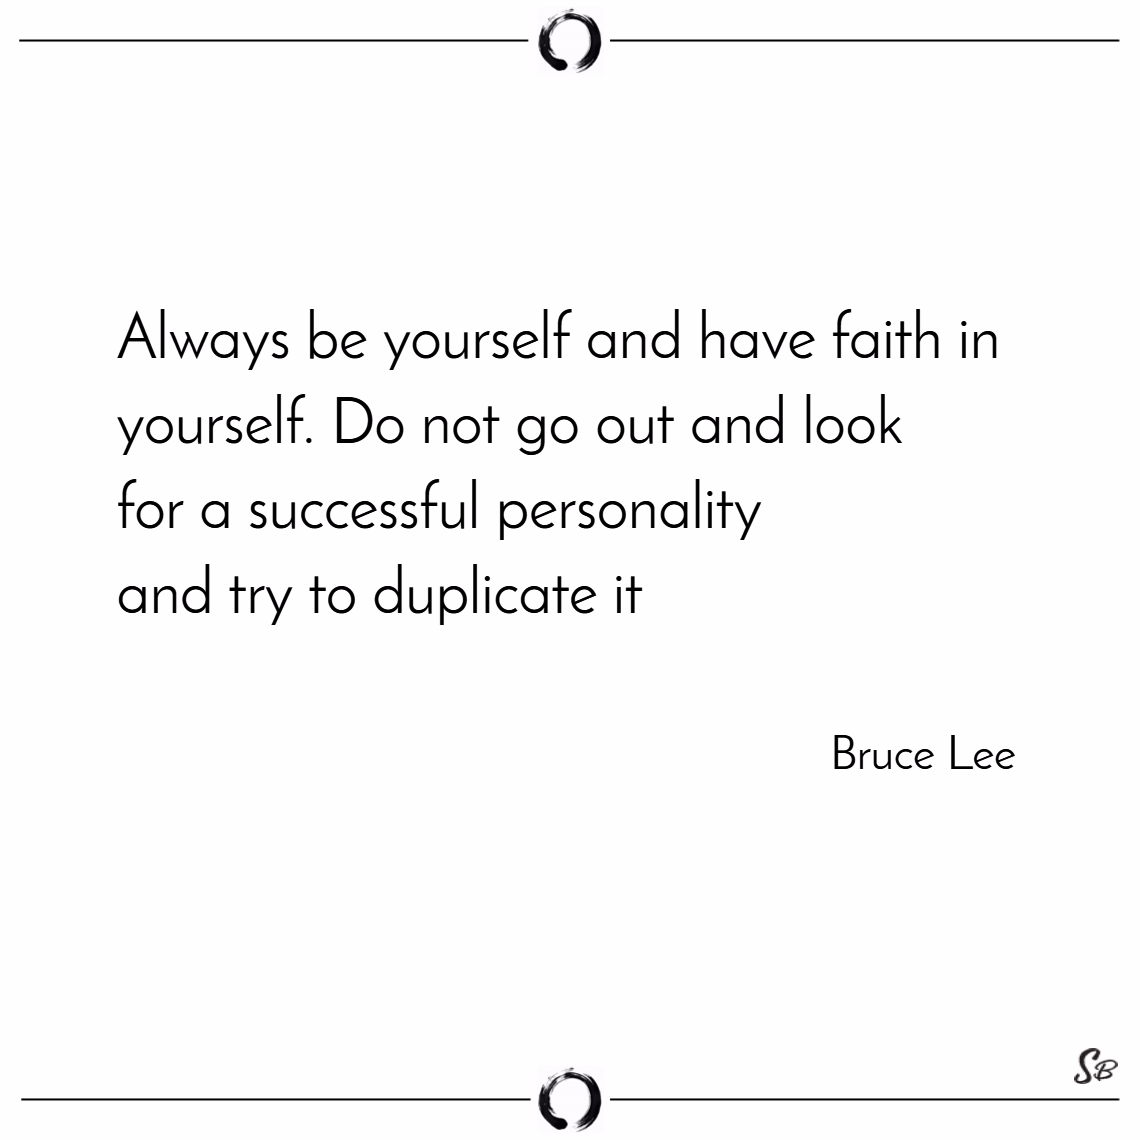 Always be yourself and have faith in yourself. do not go out and look for a successful personality and try to duplicate it. – bruce lee